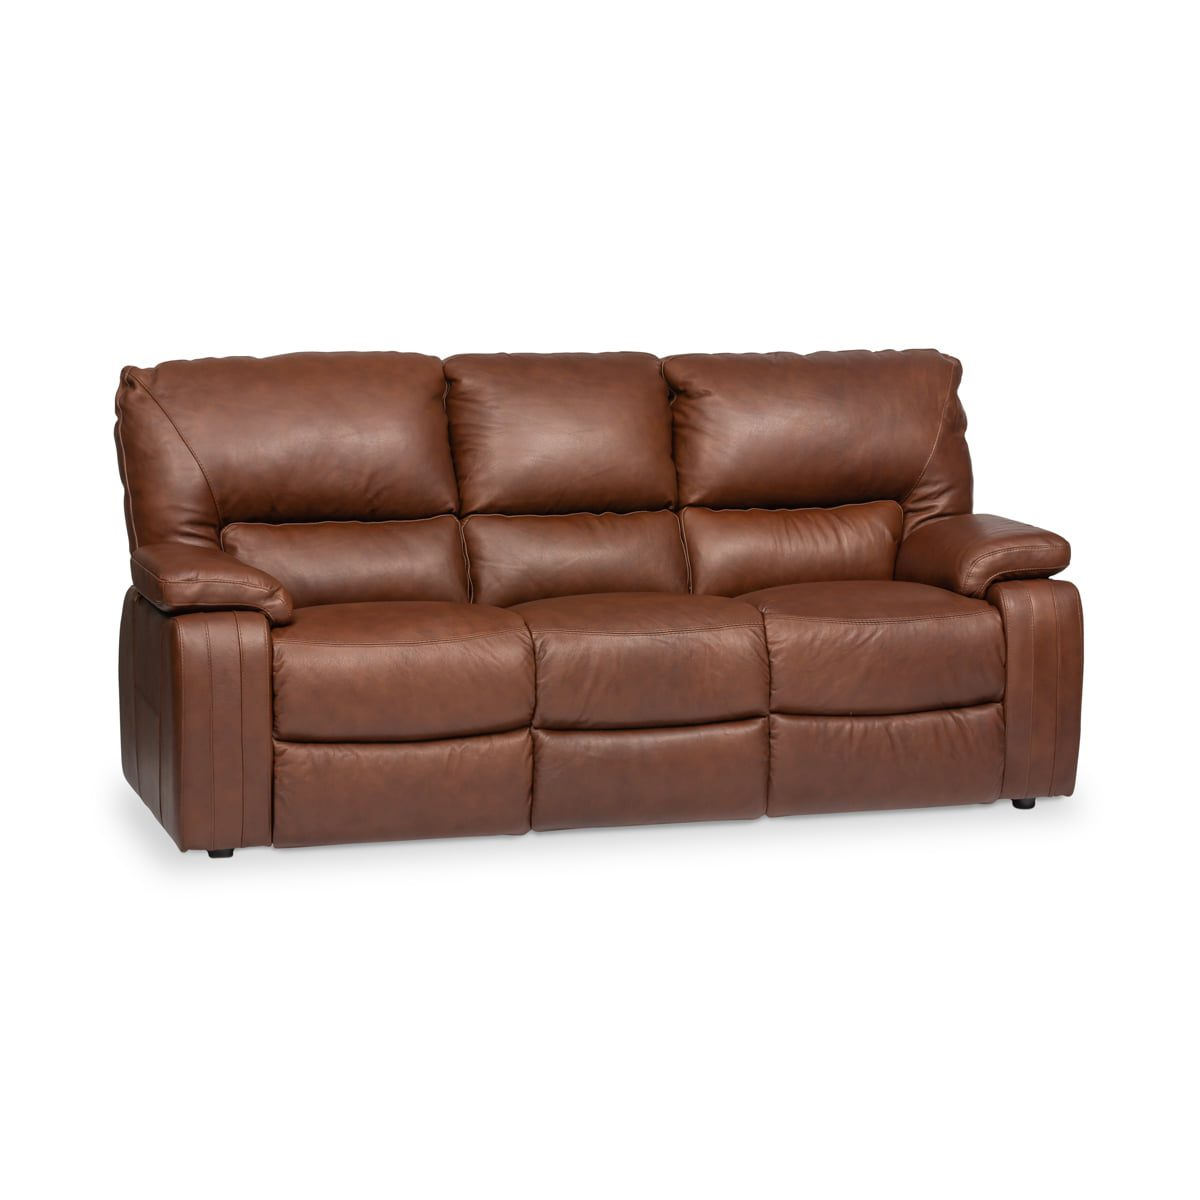 Amerigo Leather 3 Seater